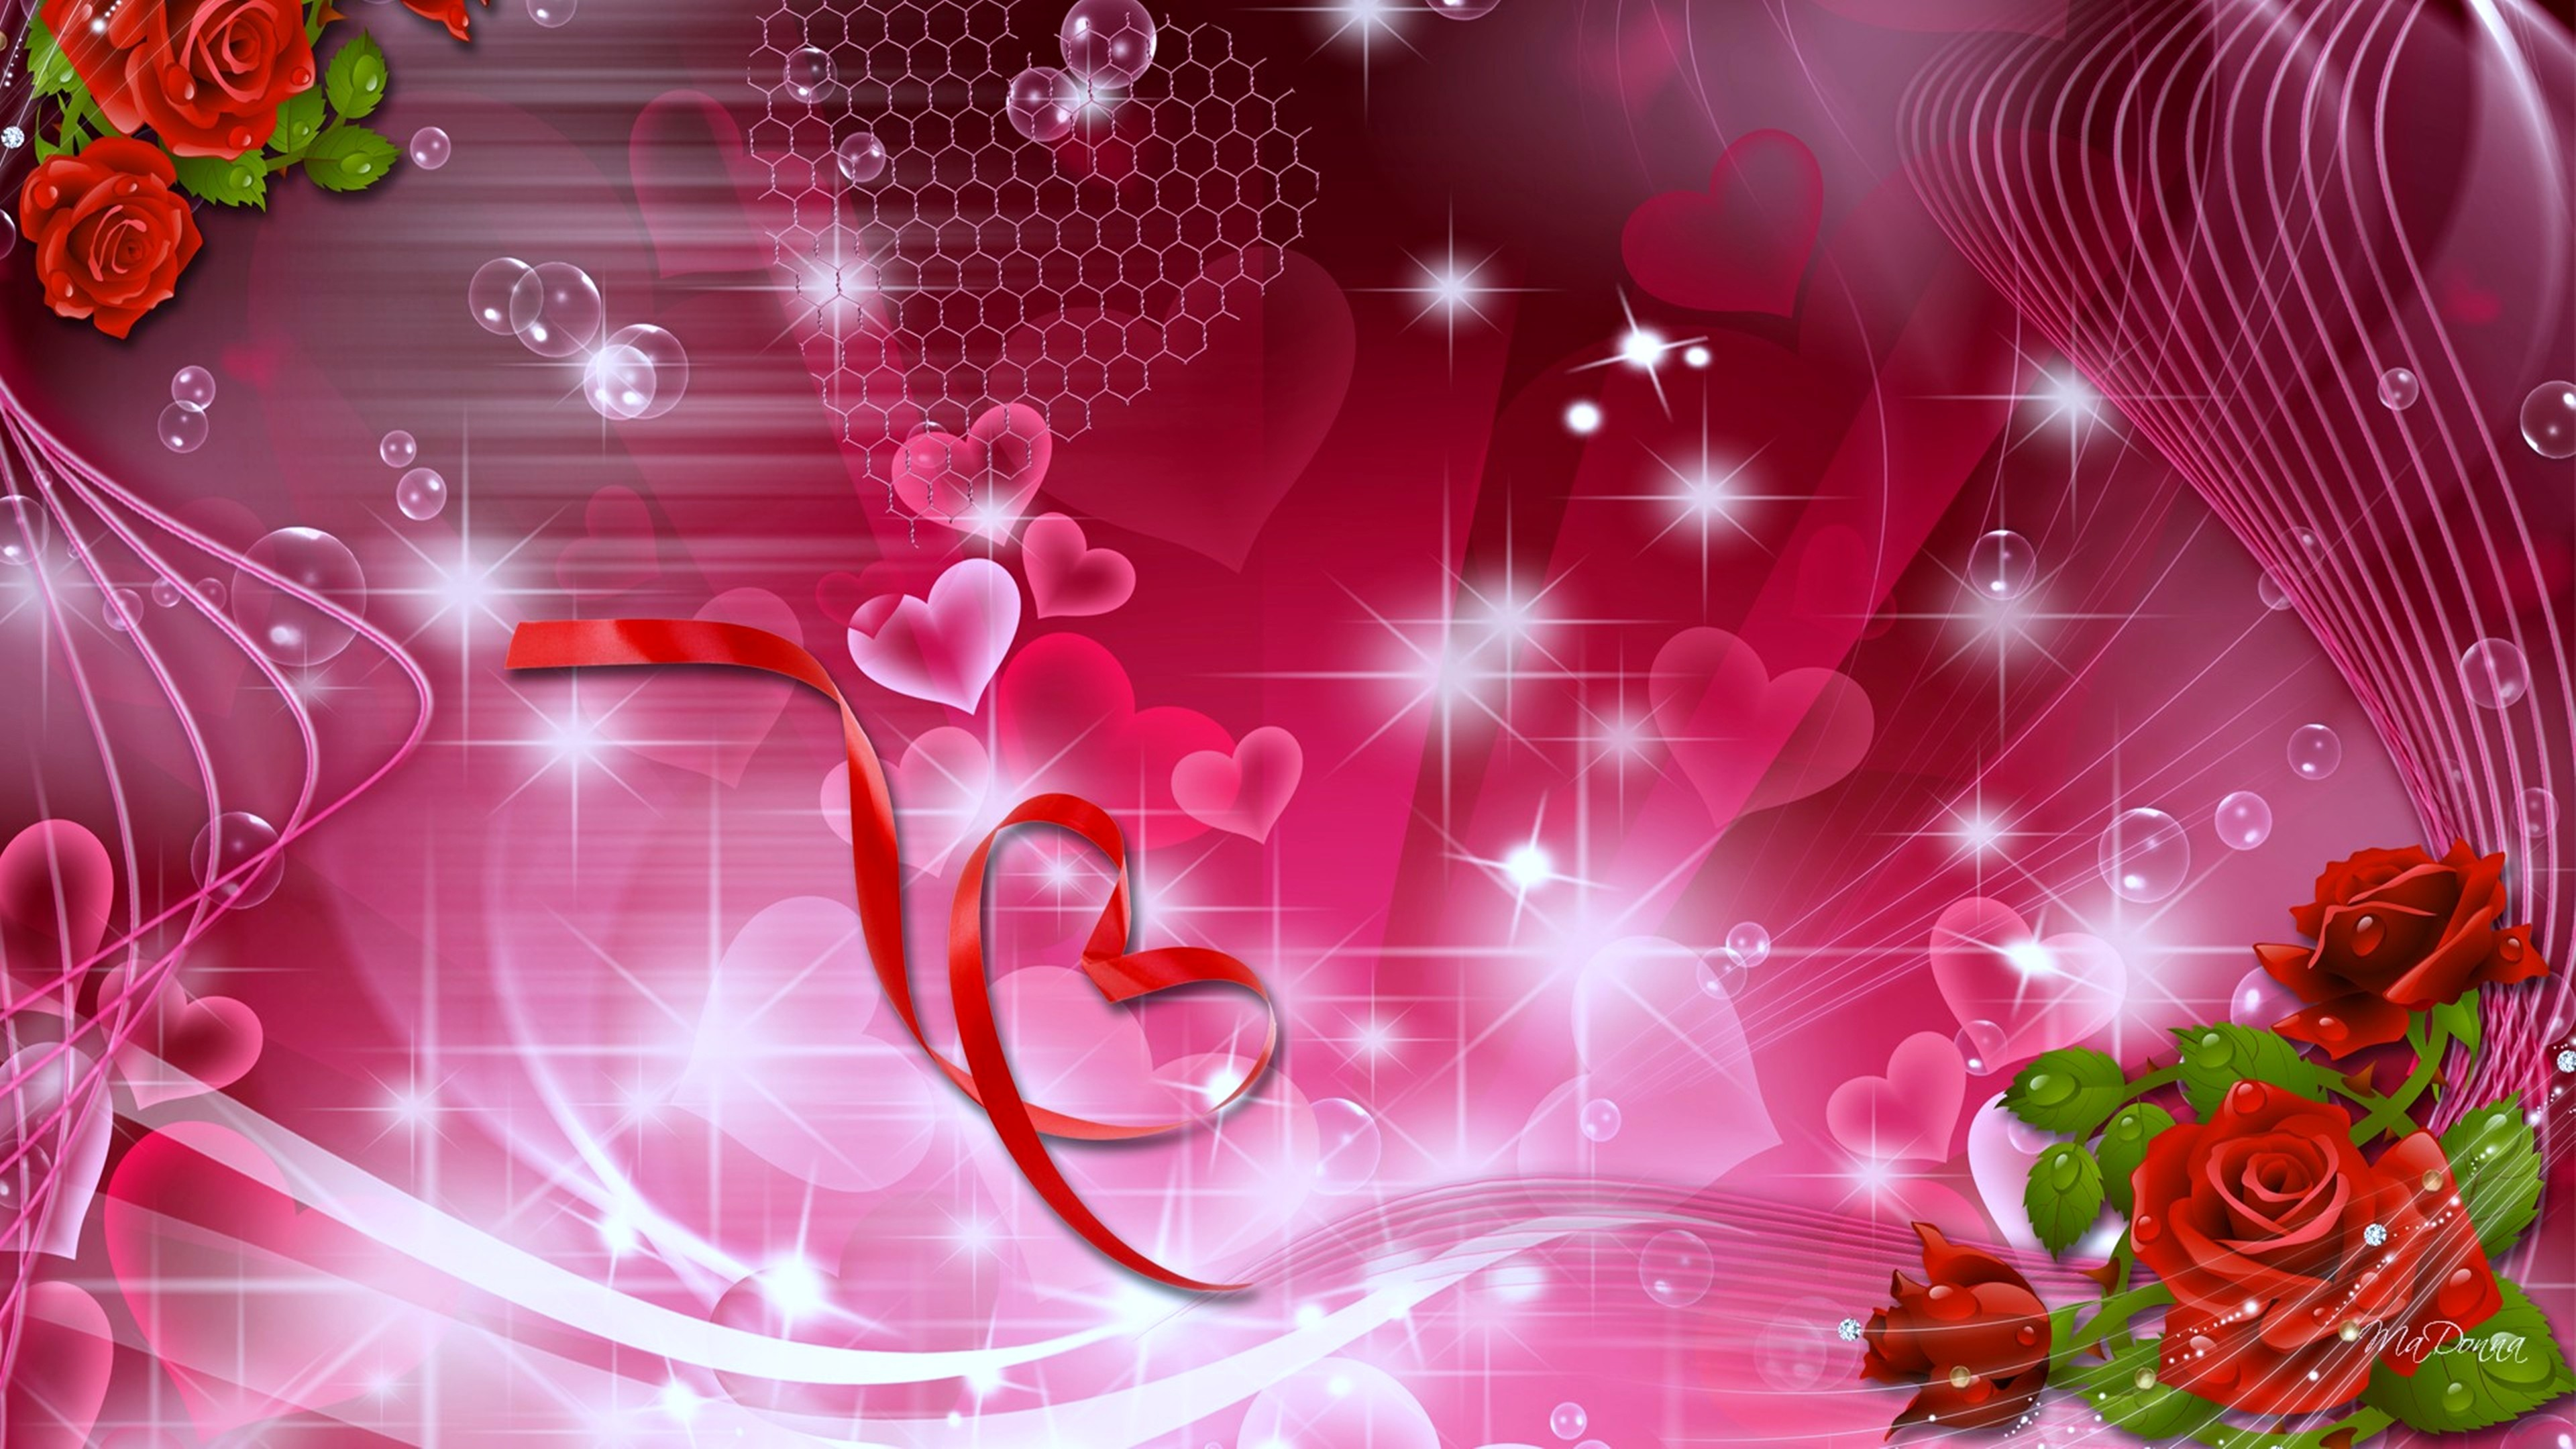 50 Love Wallpaper Hd Full Size For Mobile And Laptop: Romantic Background ·① Download Free Beautiful Wallpapers